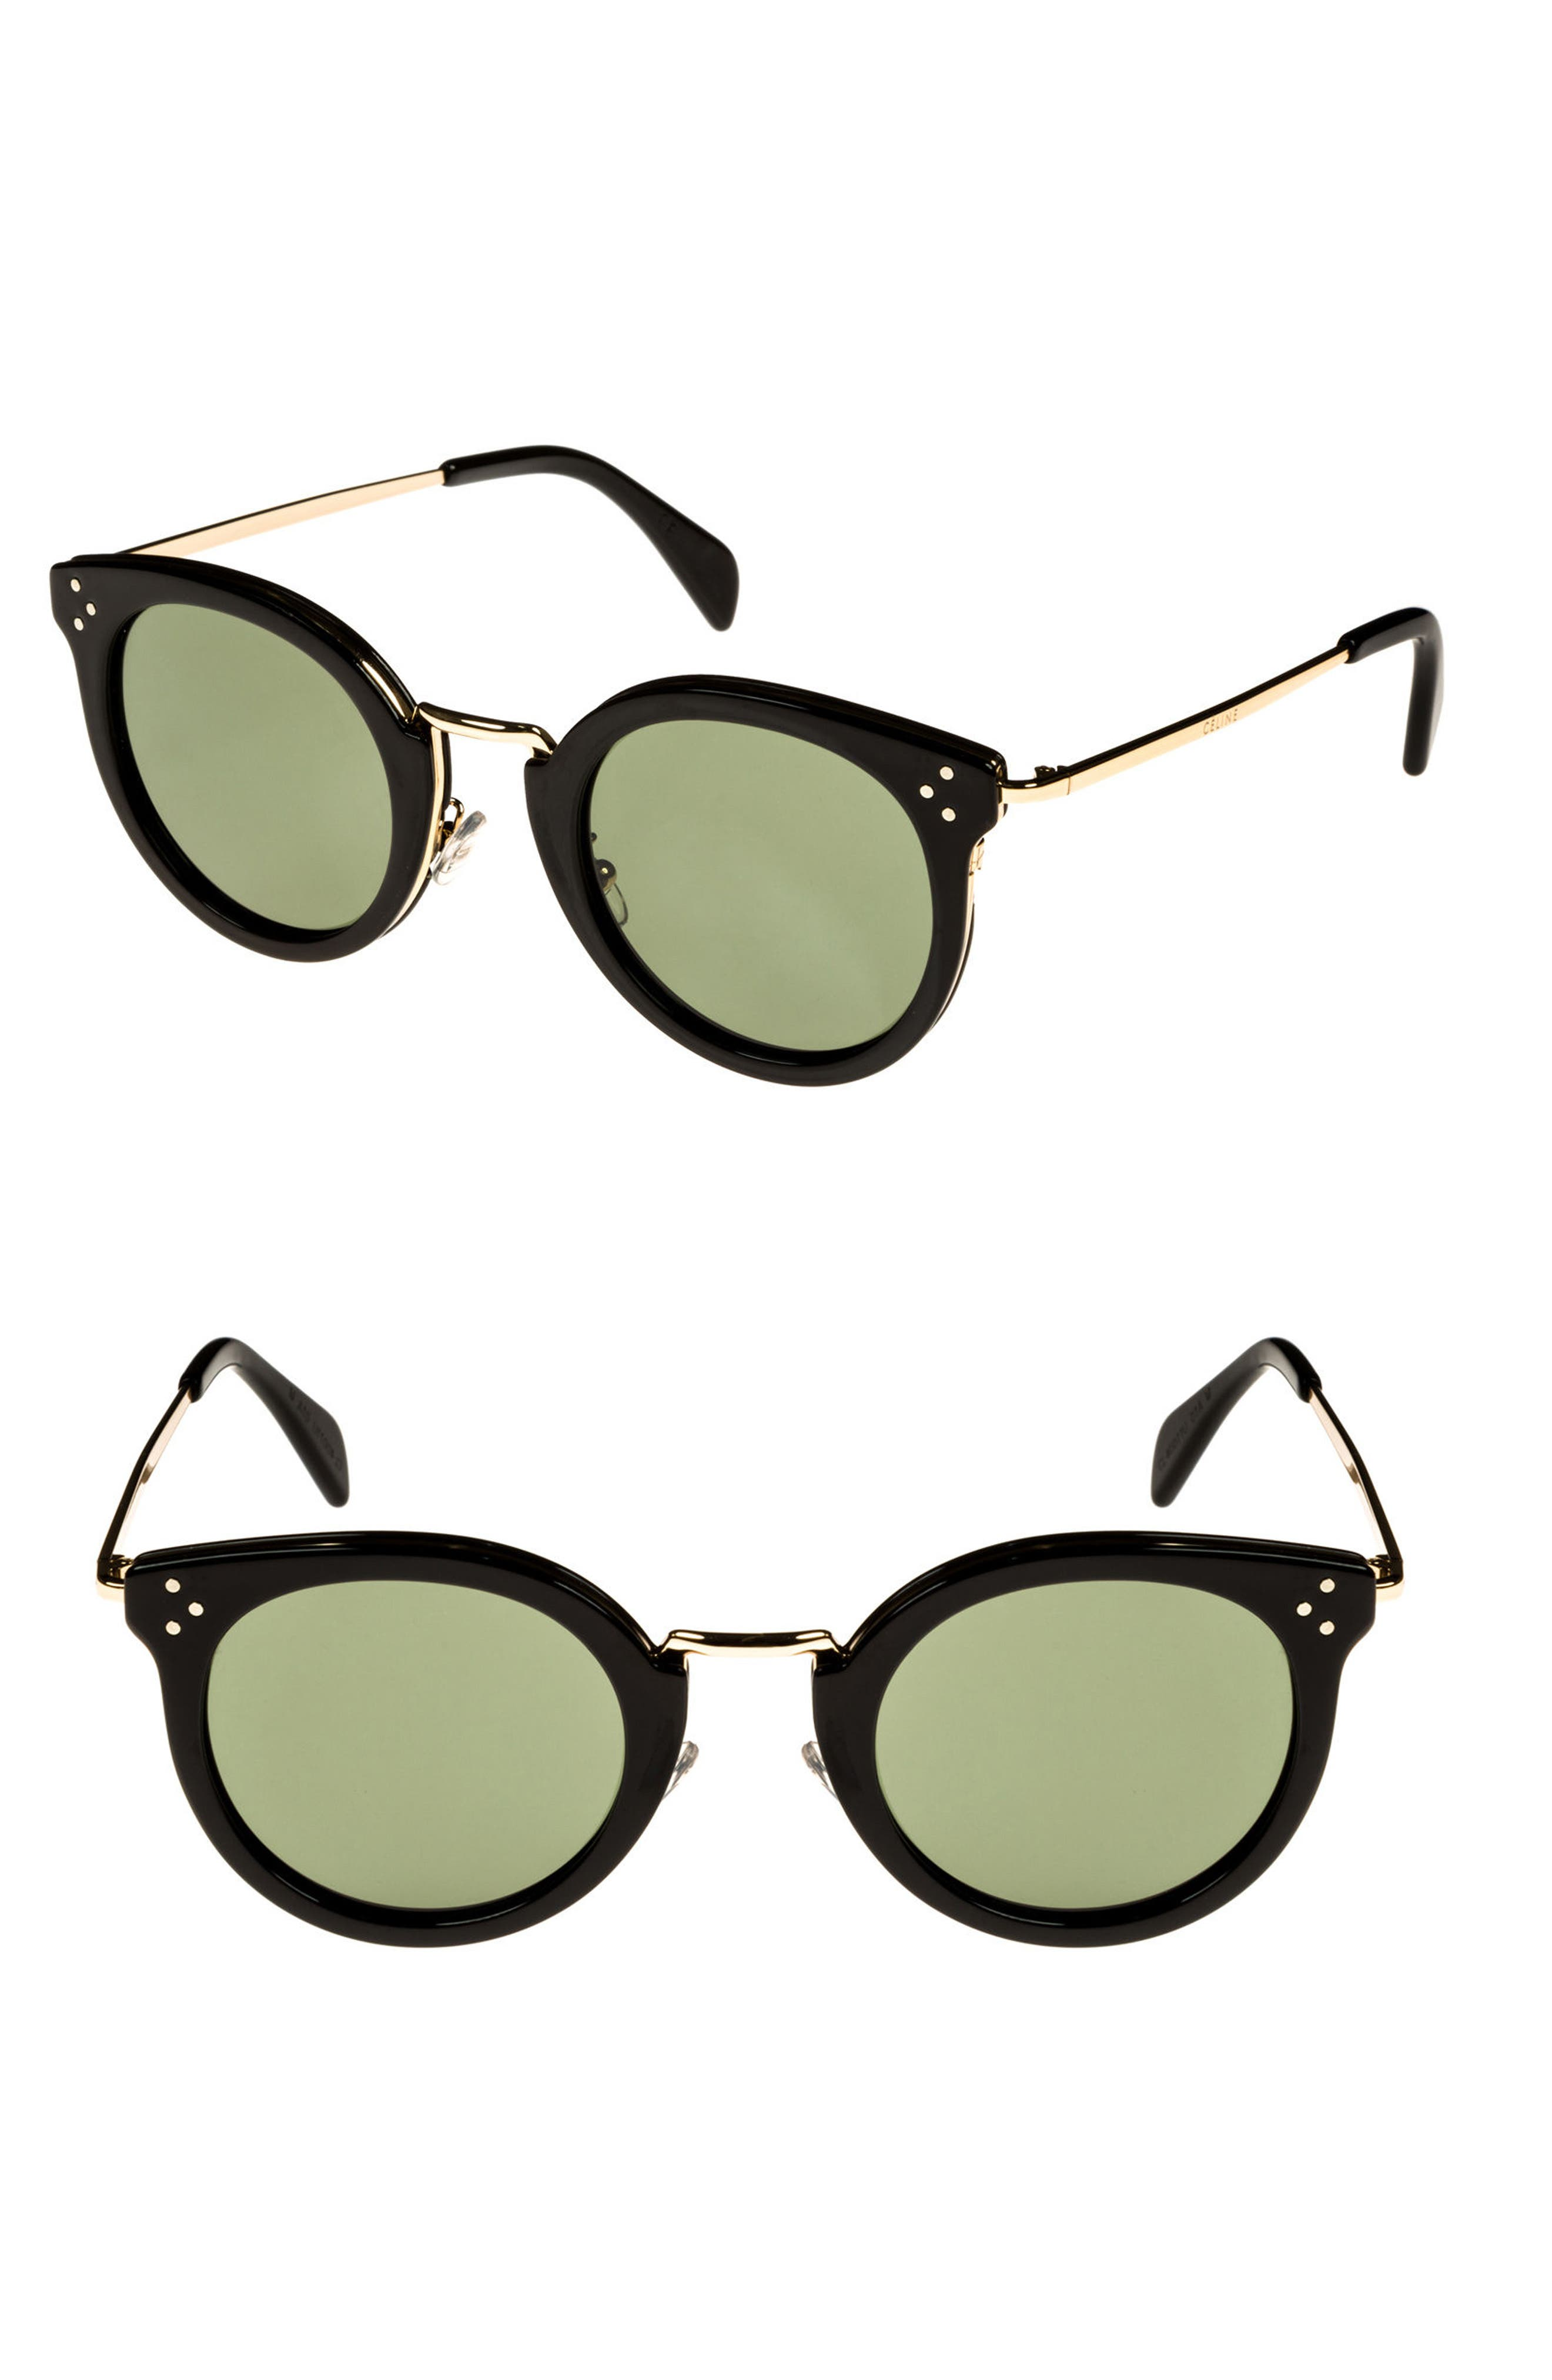 49mm Round Sunglasses,                         Main,                         color, Black/ Pale Gold/ Smoke